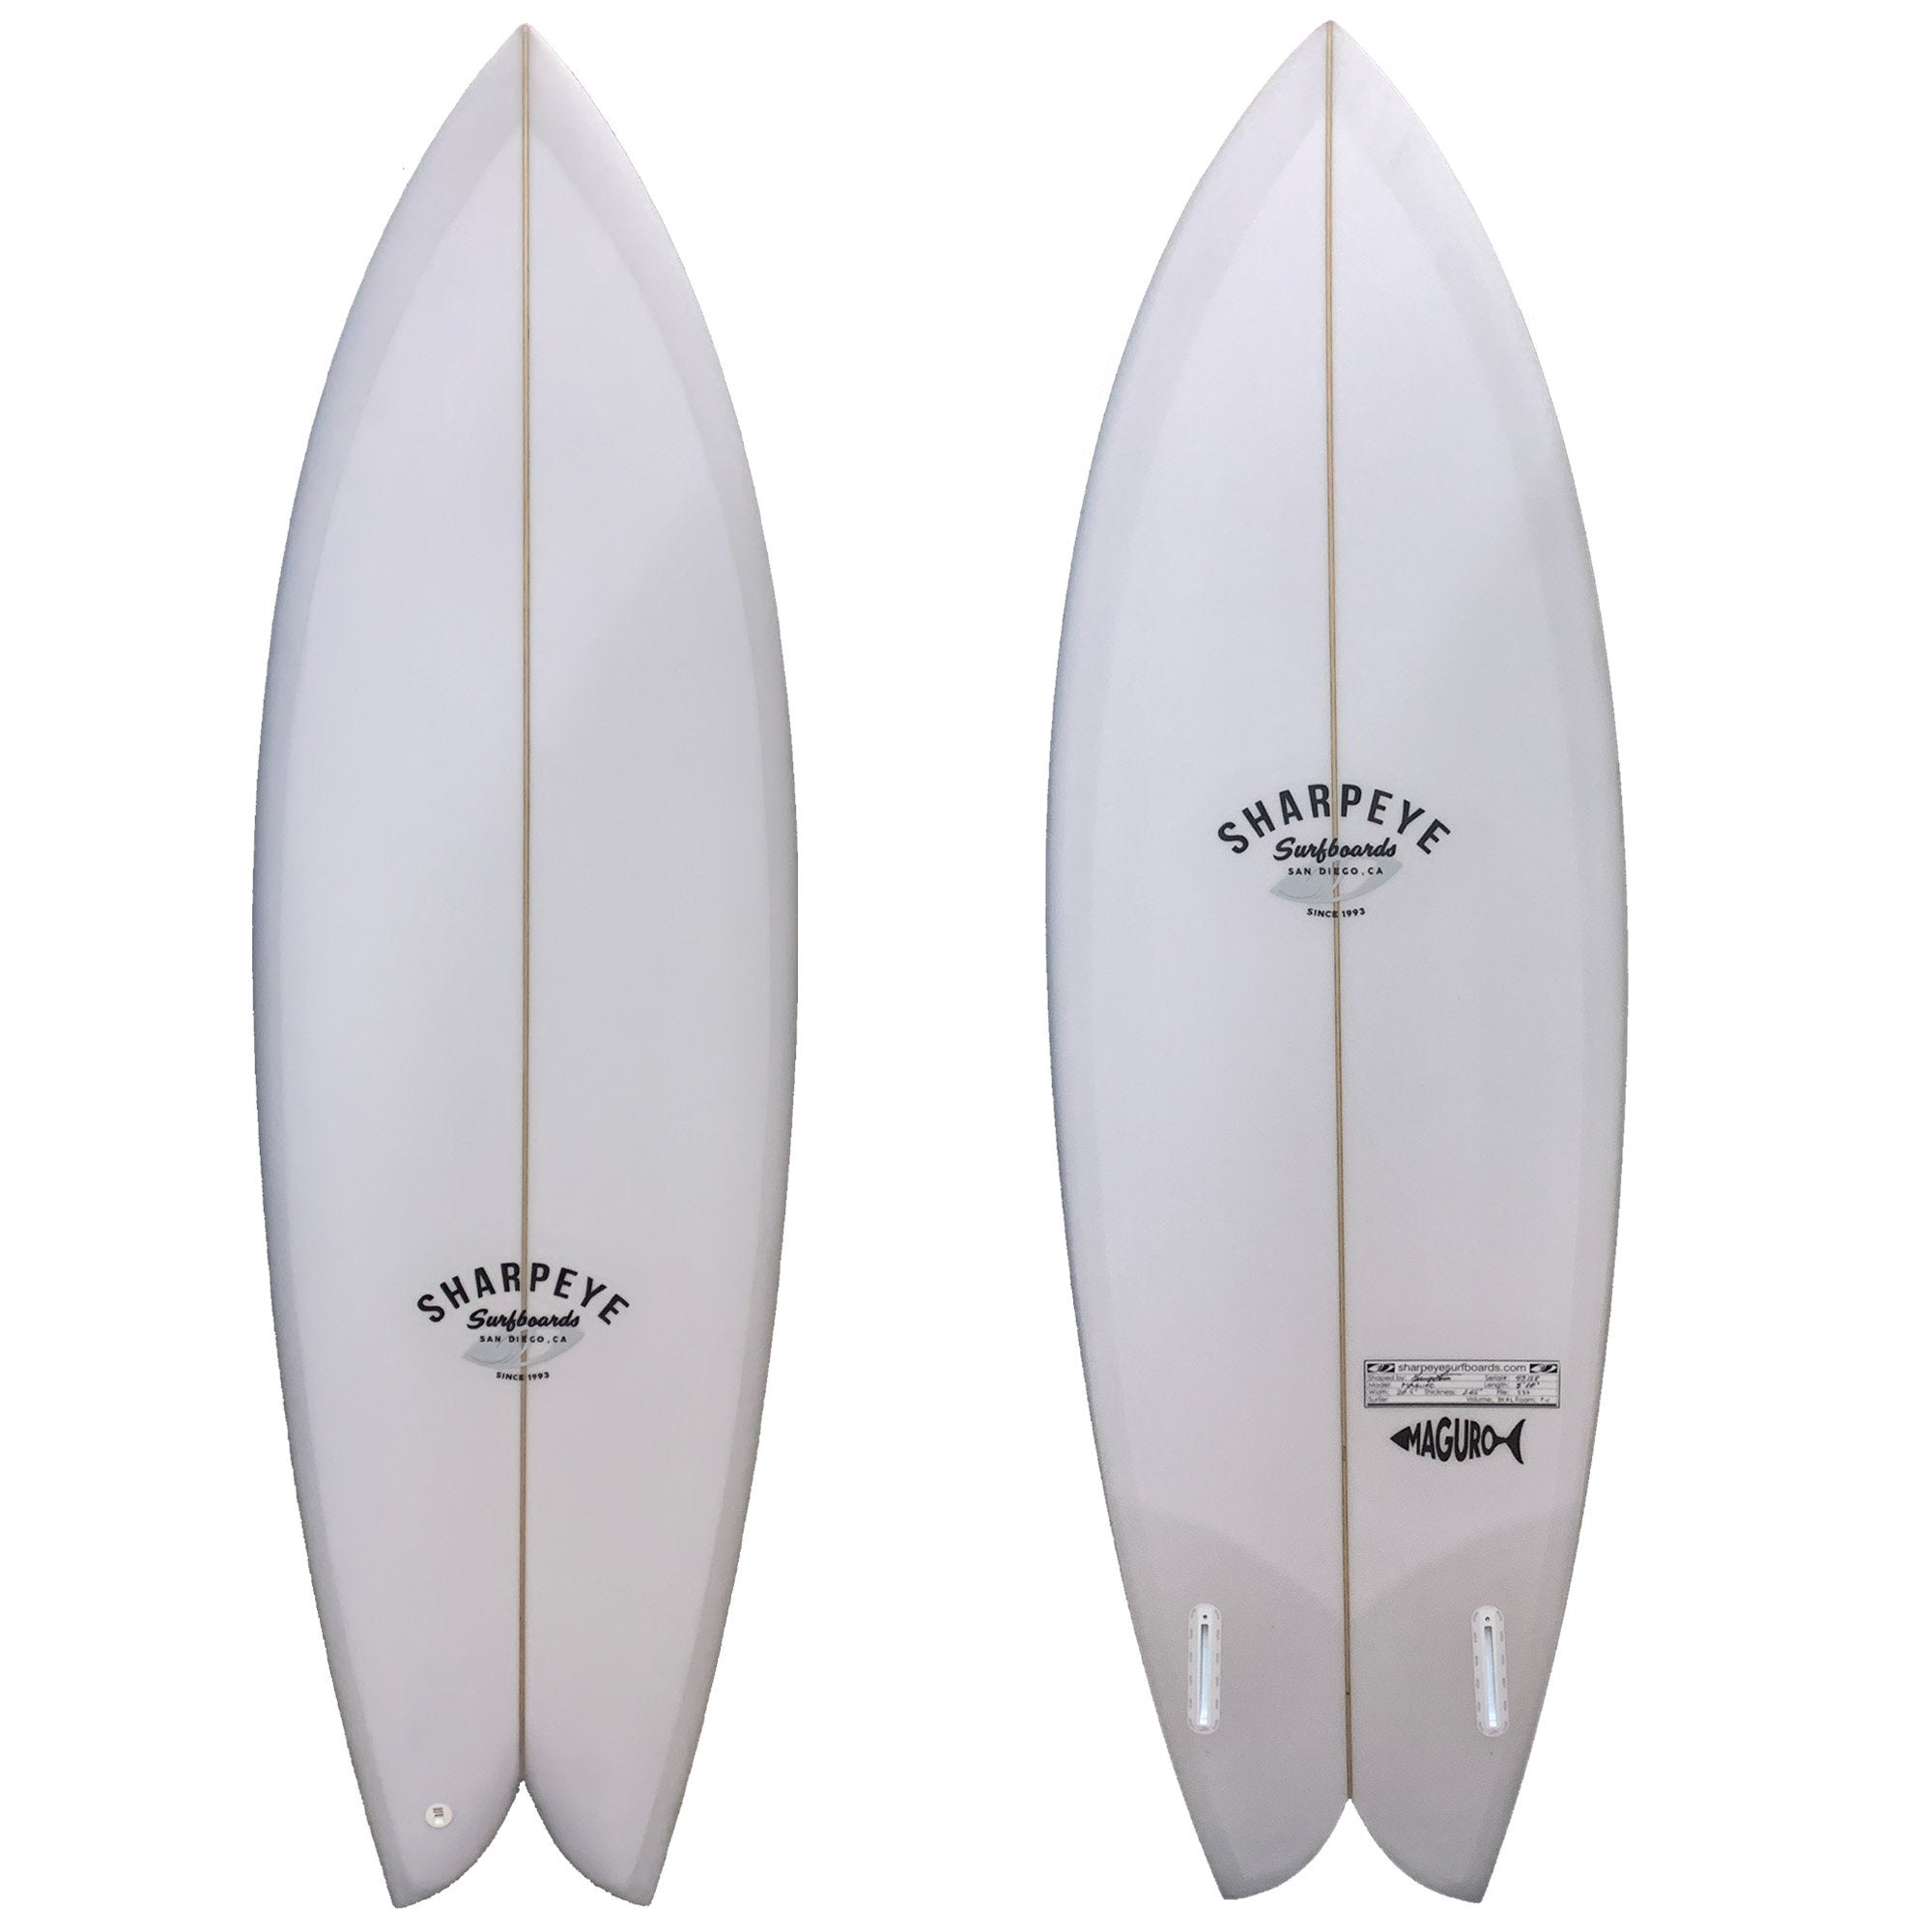 Sharp Eye Maguro Surfboard - Futures